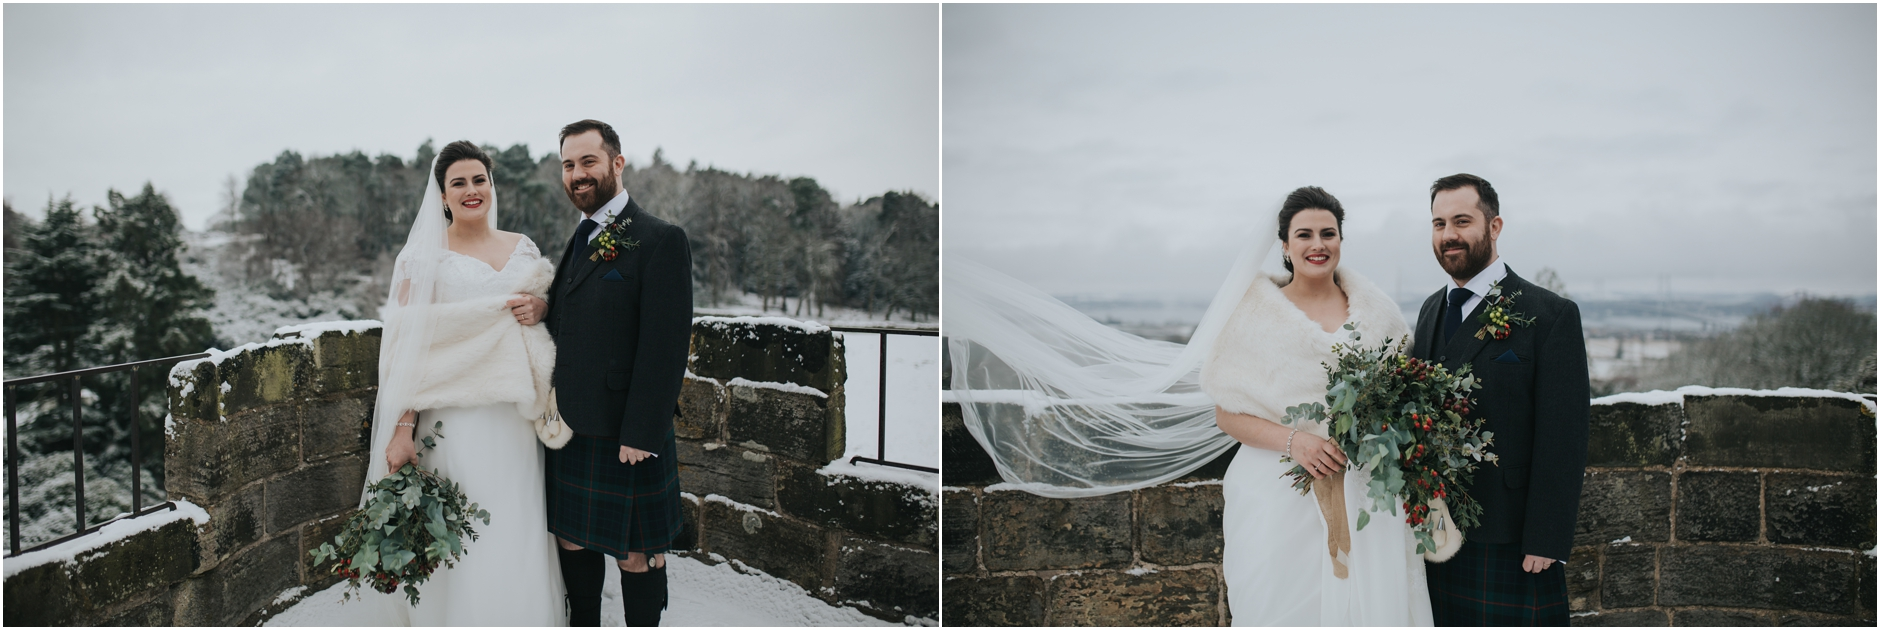 winter snowy wedding at dundas castle Edinburgh scotland